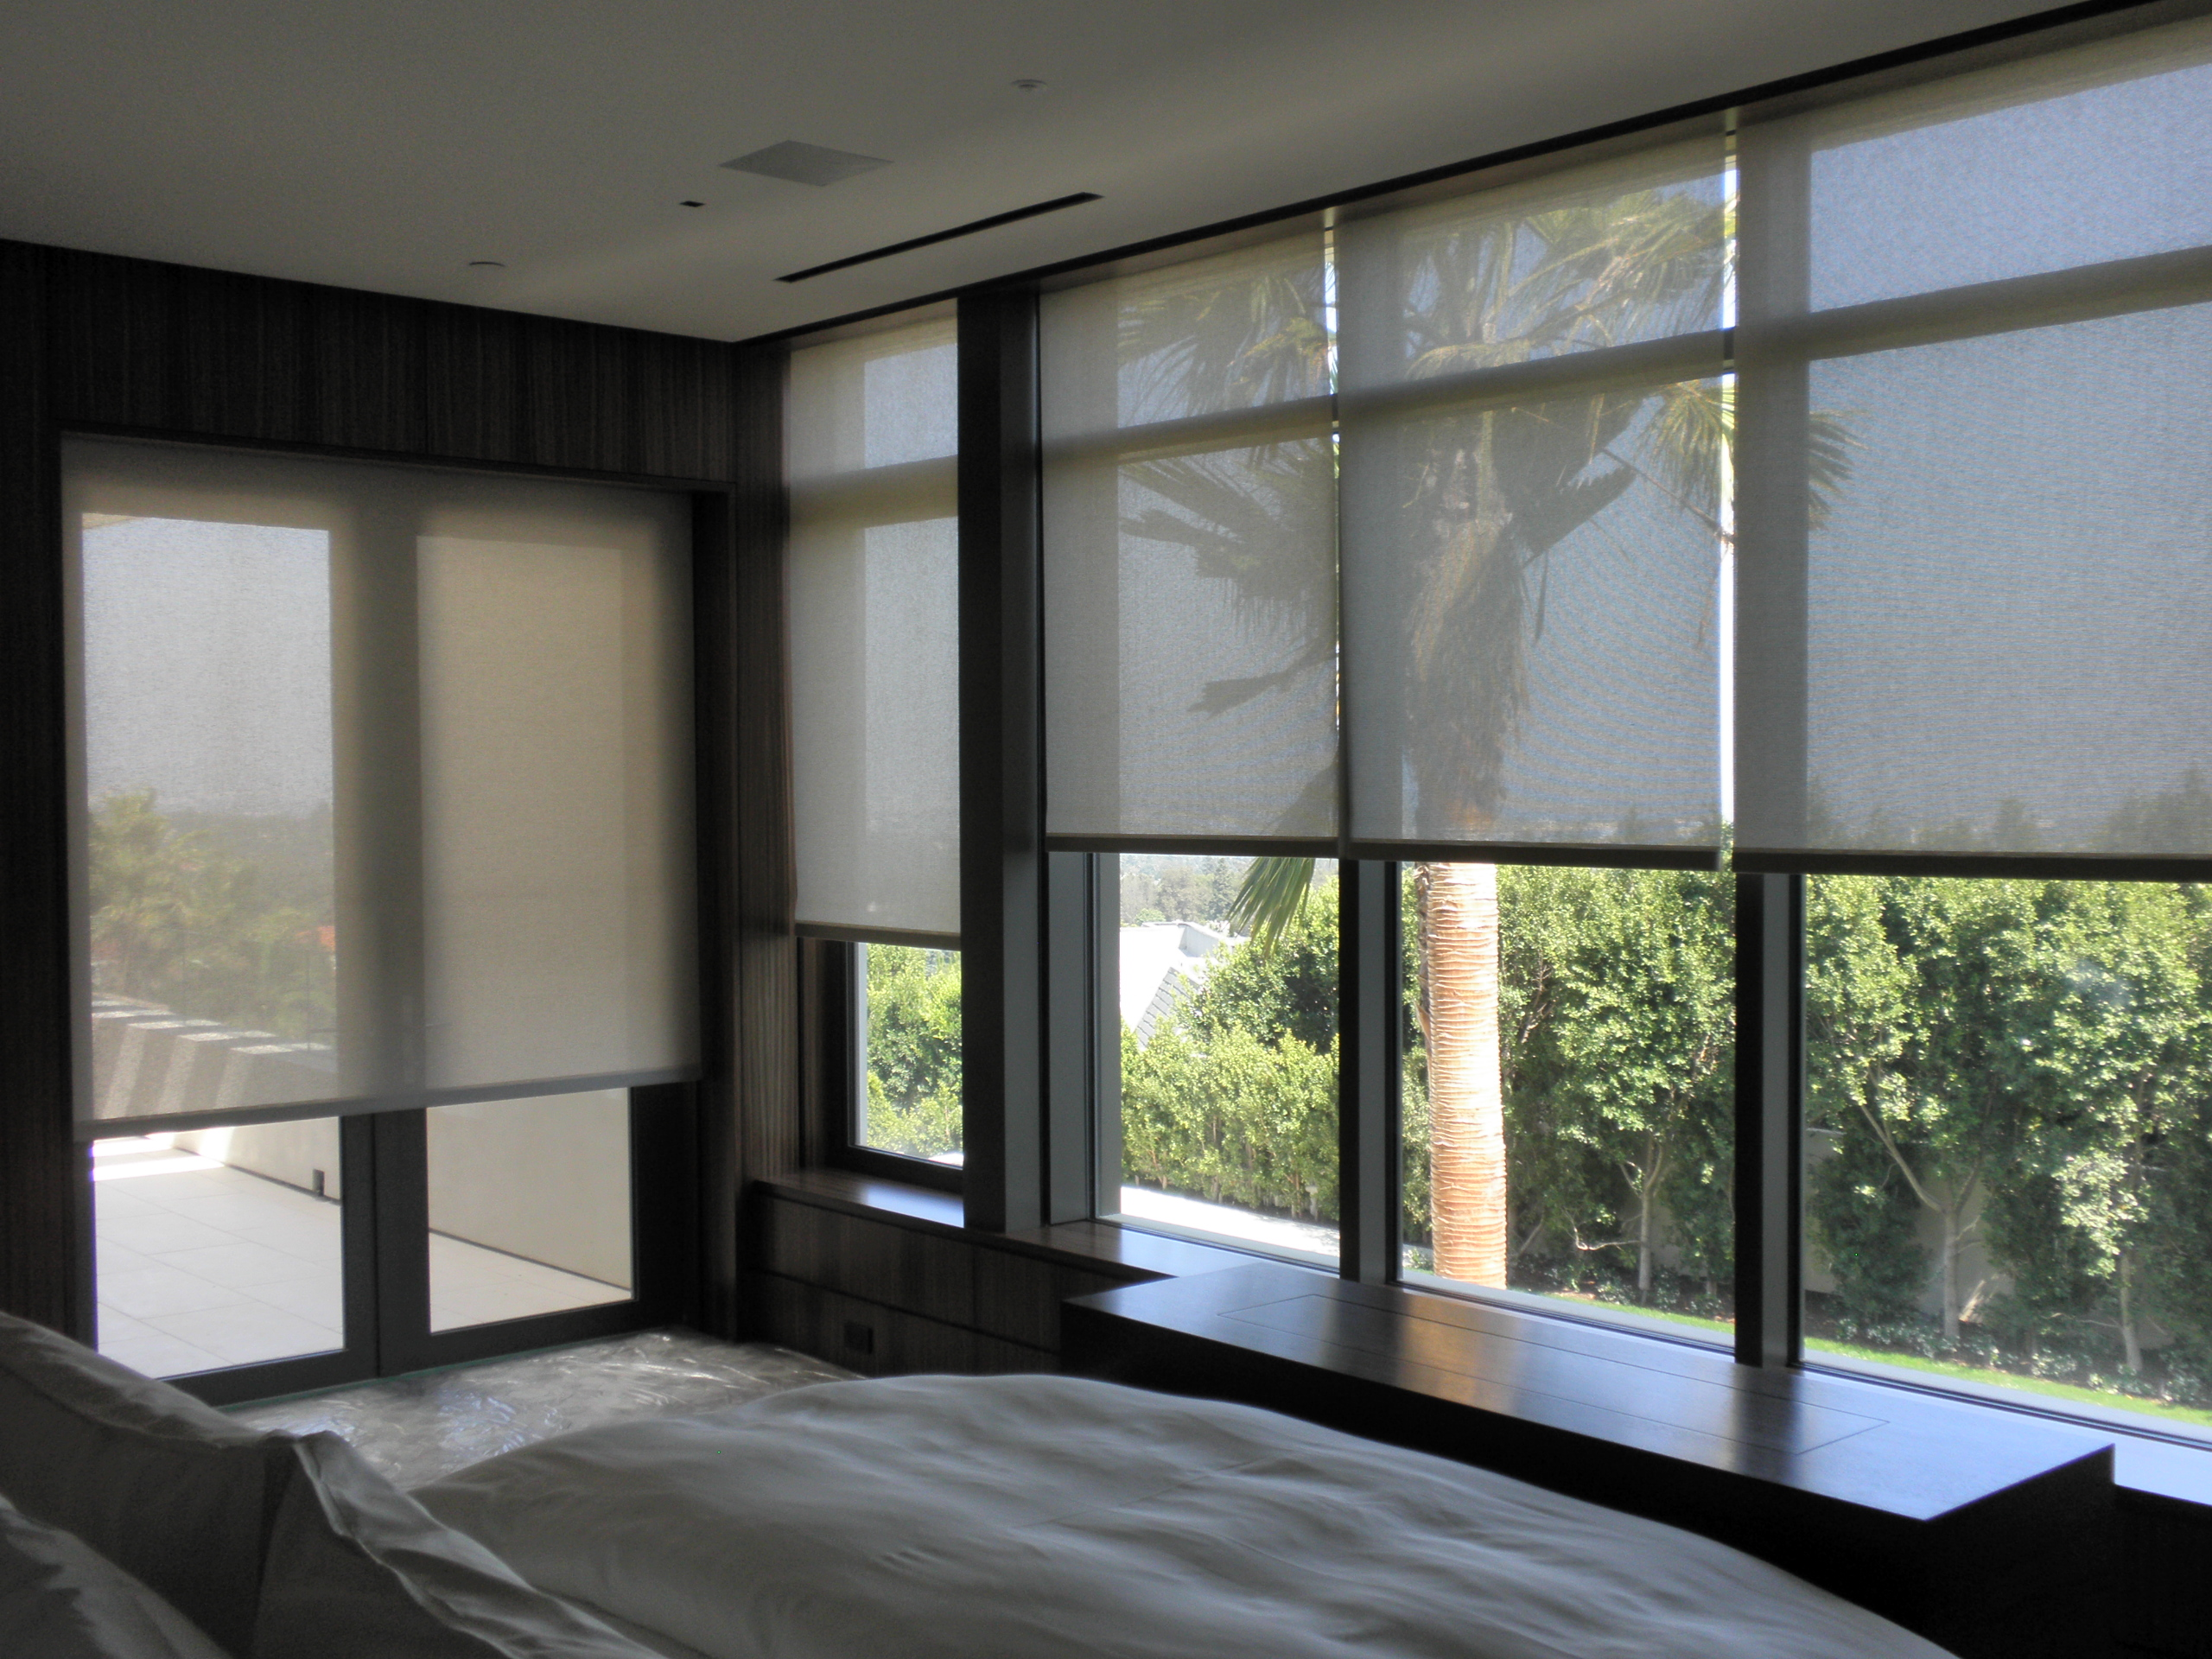 Effective shading solutions motorized shading advantages for How to install motorized blinds